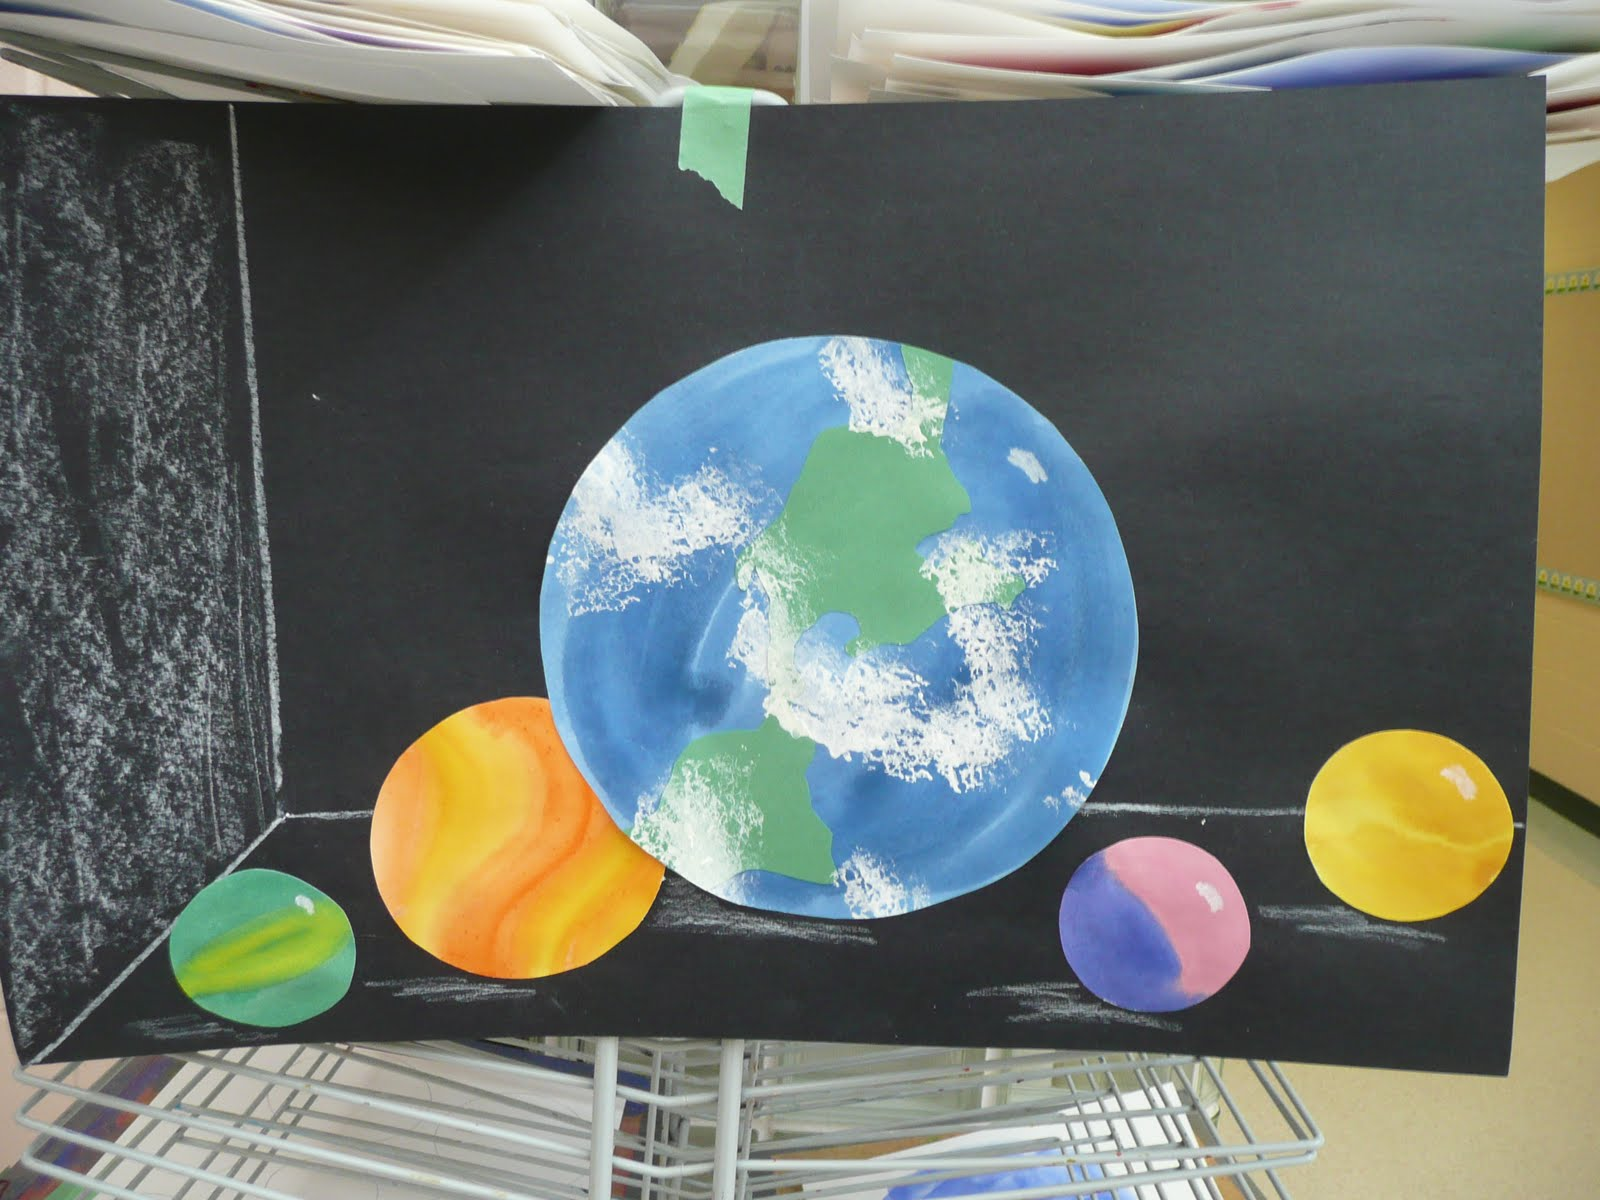 planet earth diorama projects - photo #8